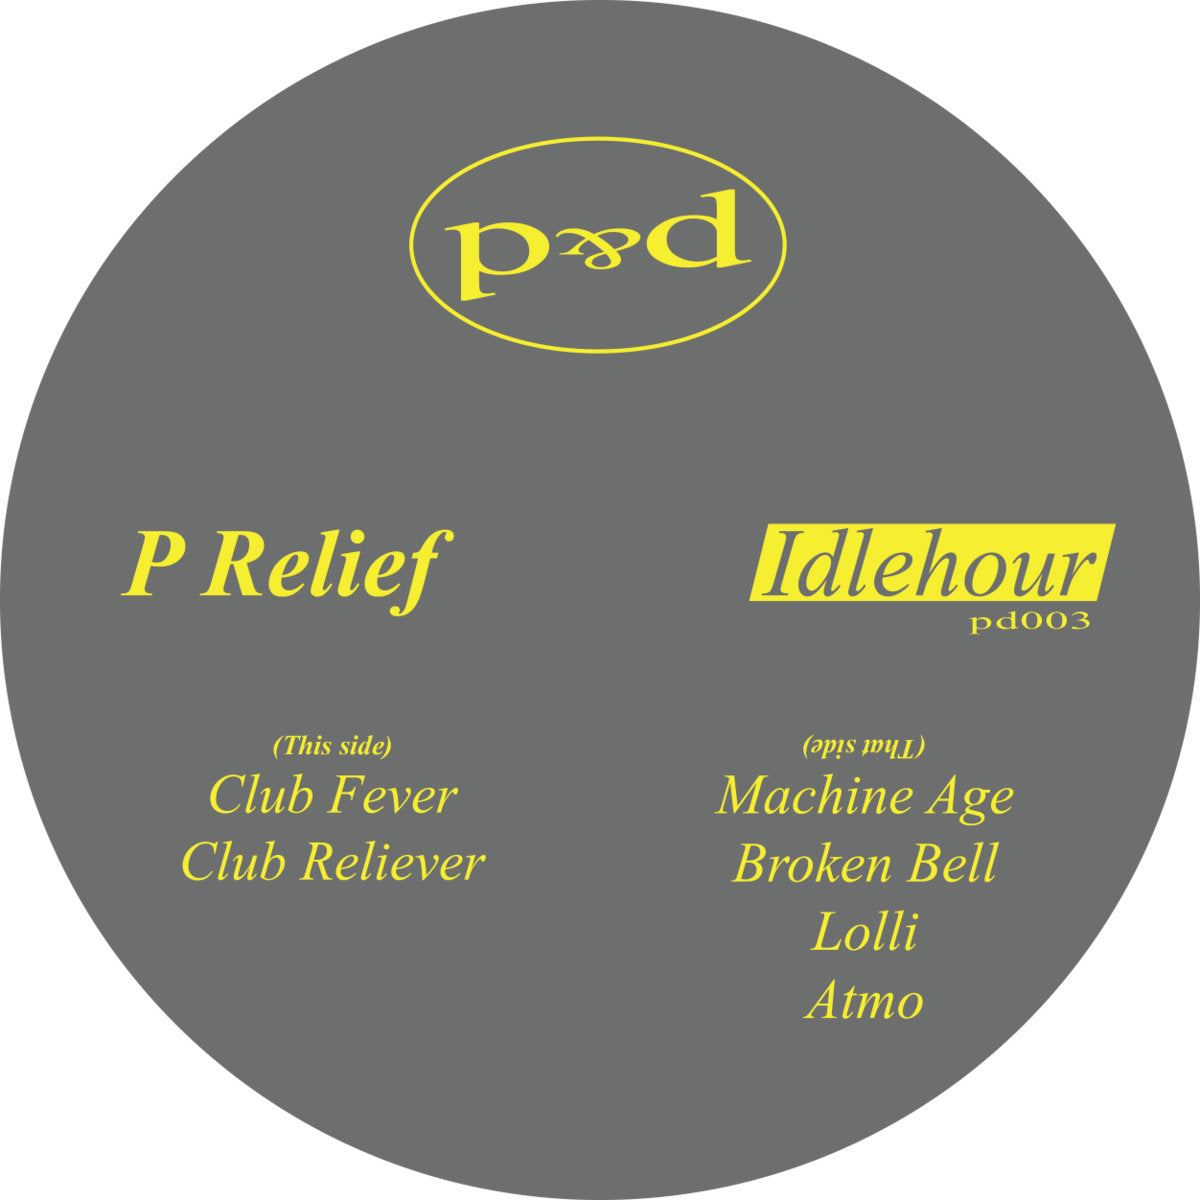 Idlehour - P Relief